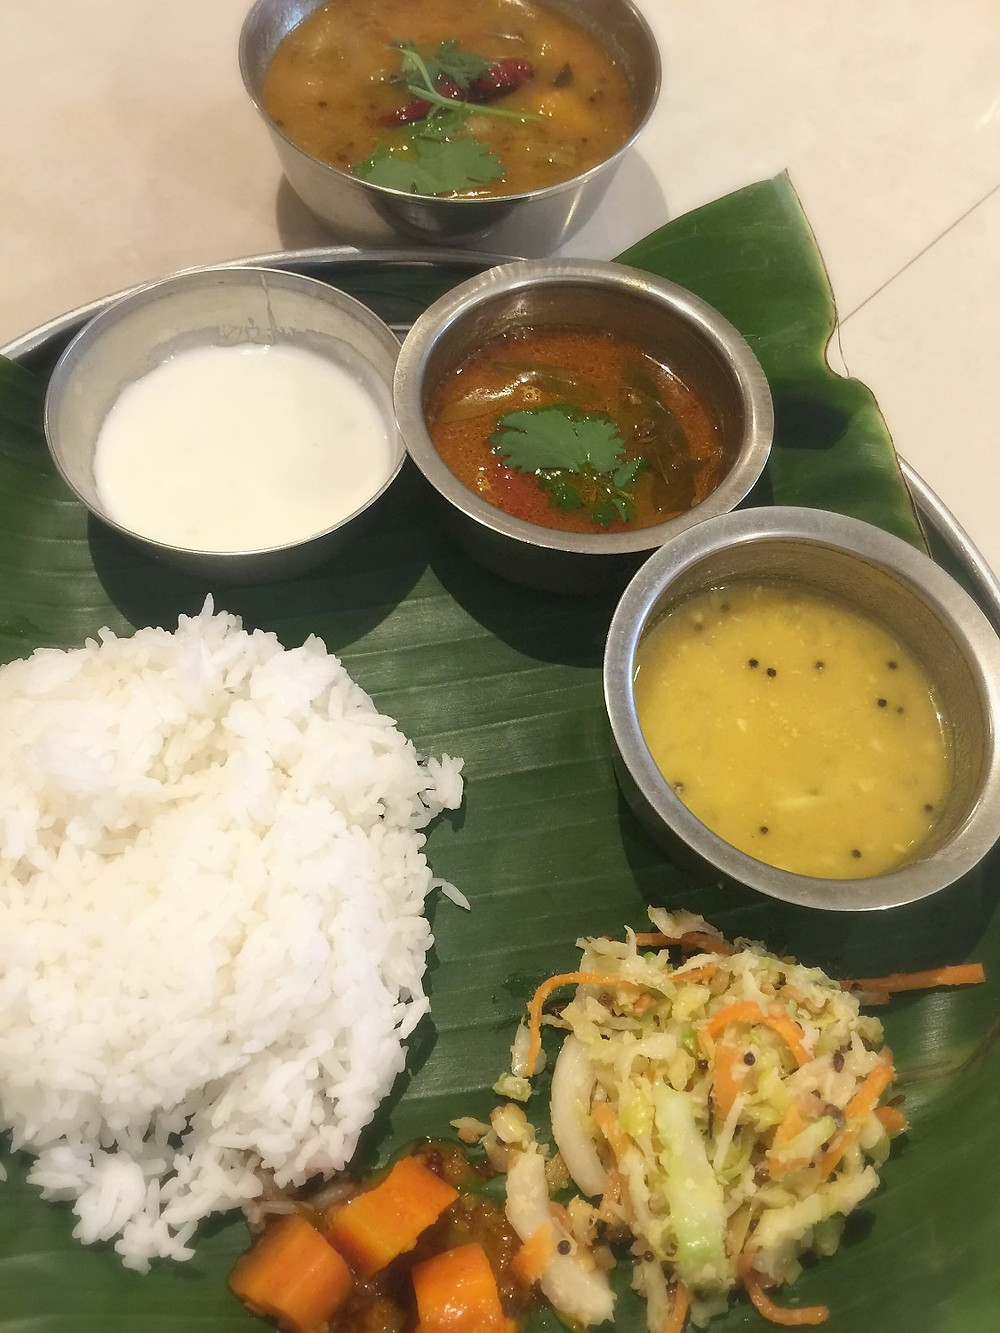 Real banana-leaf meals is a rare treat!